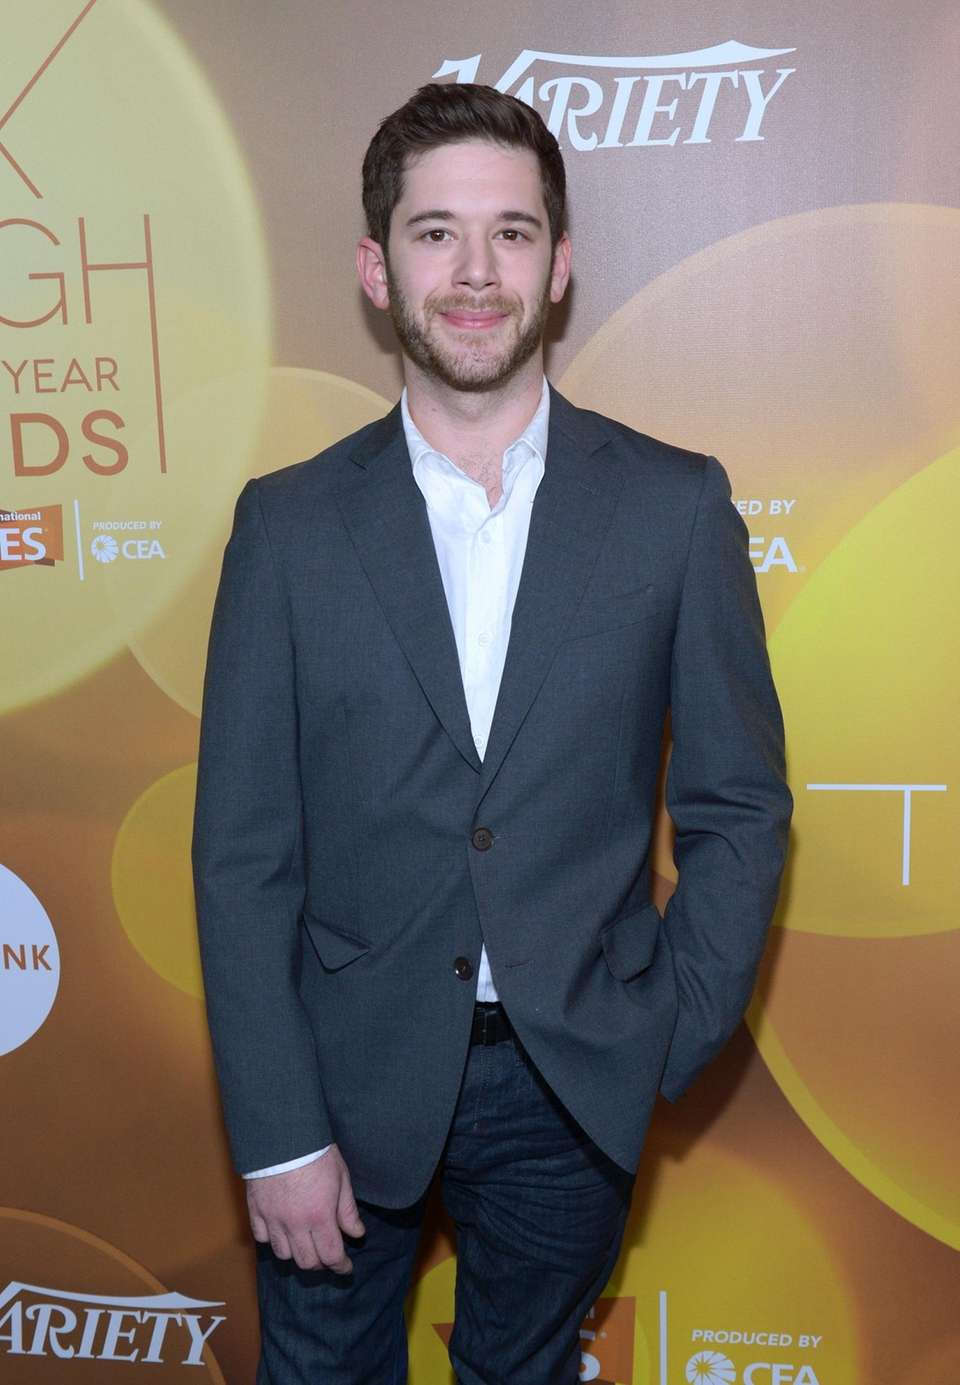 Colin Kroll, founder of HQ Trivia and Vine,